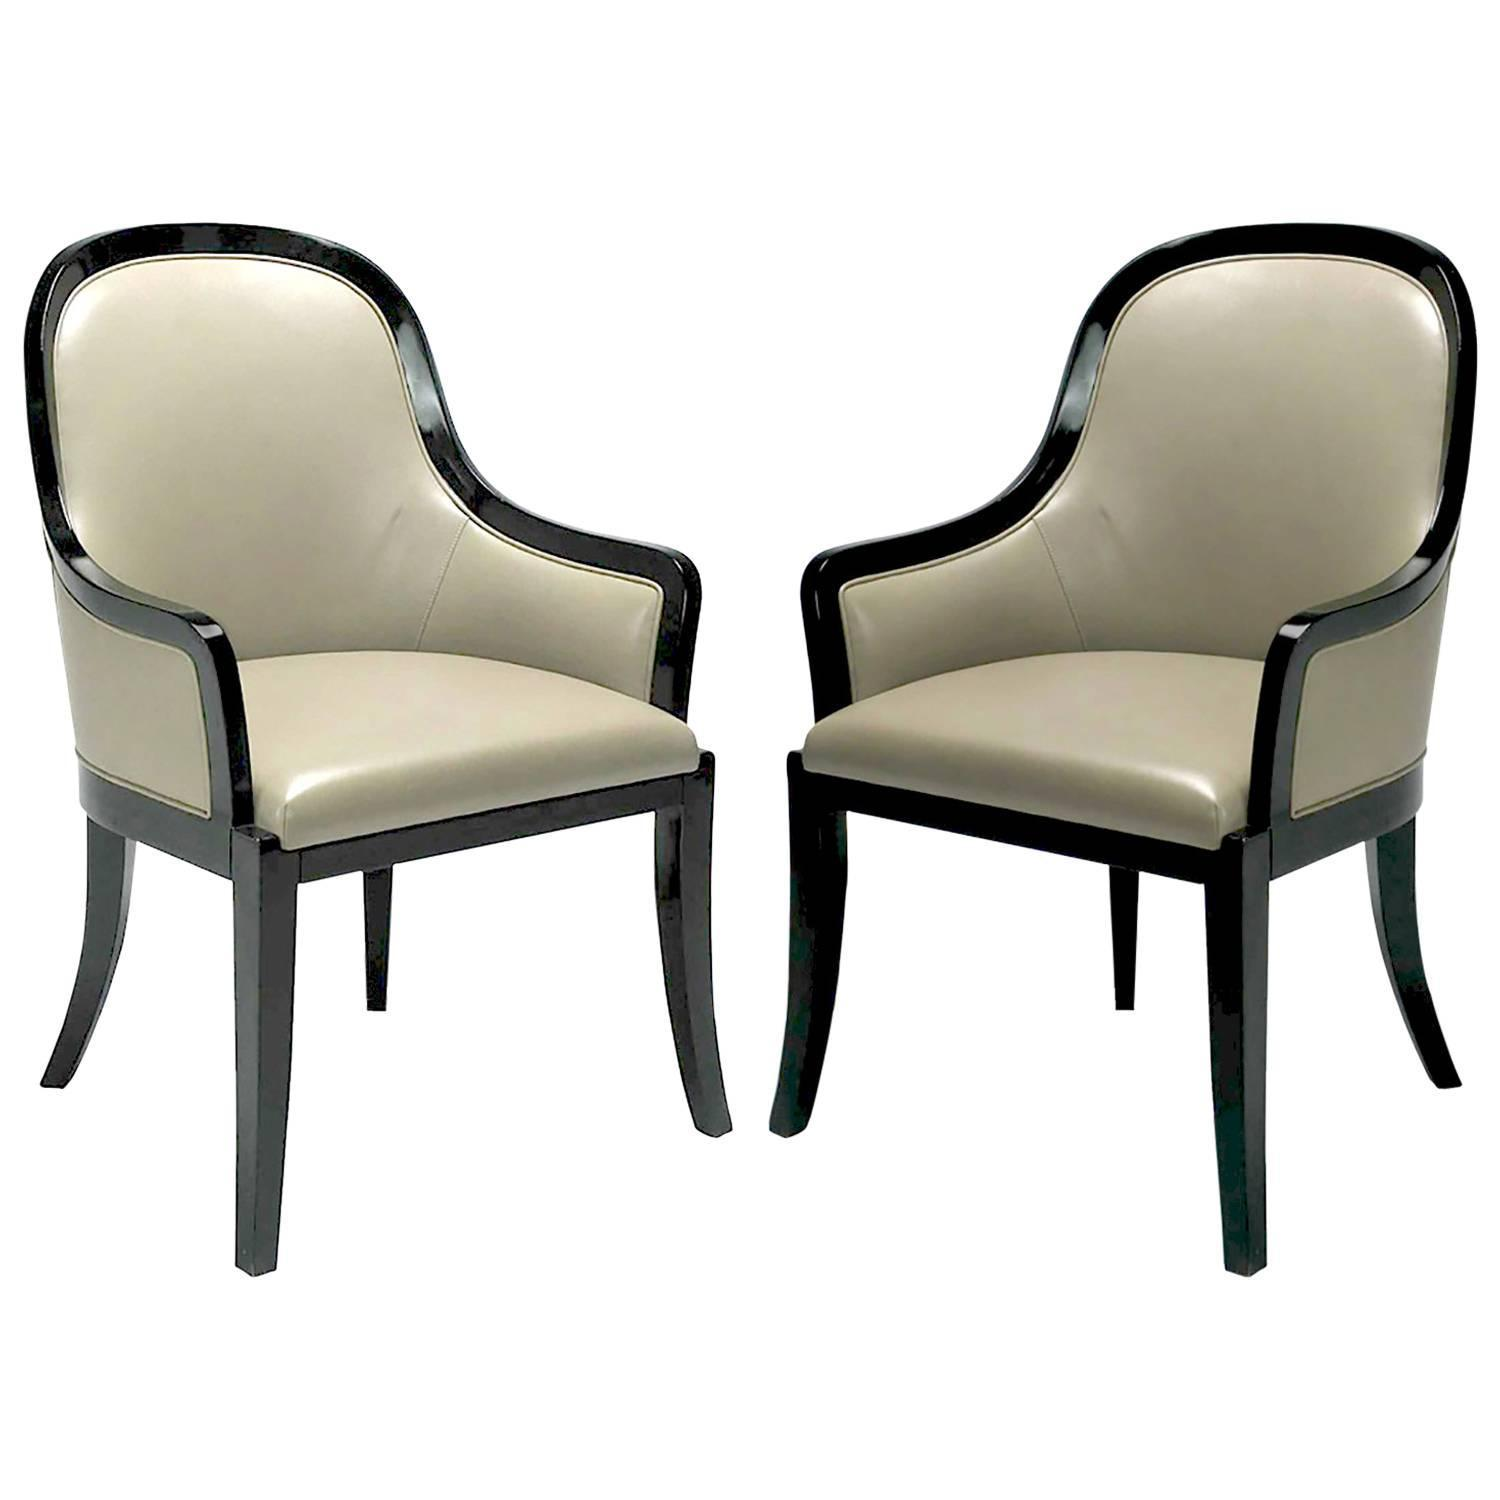 Pair of karl springer quot regina armchairs in complementary